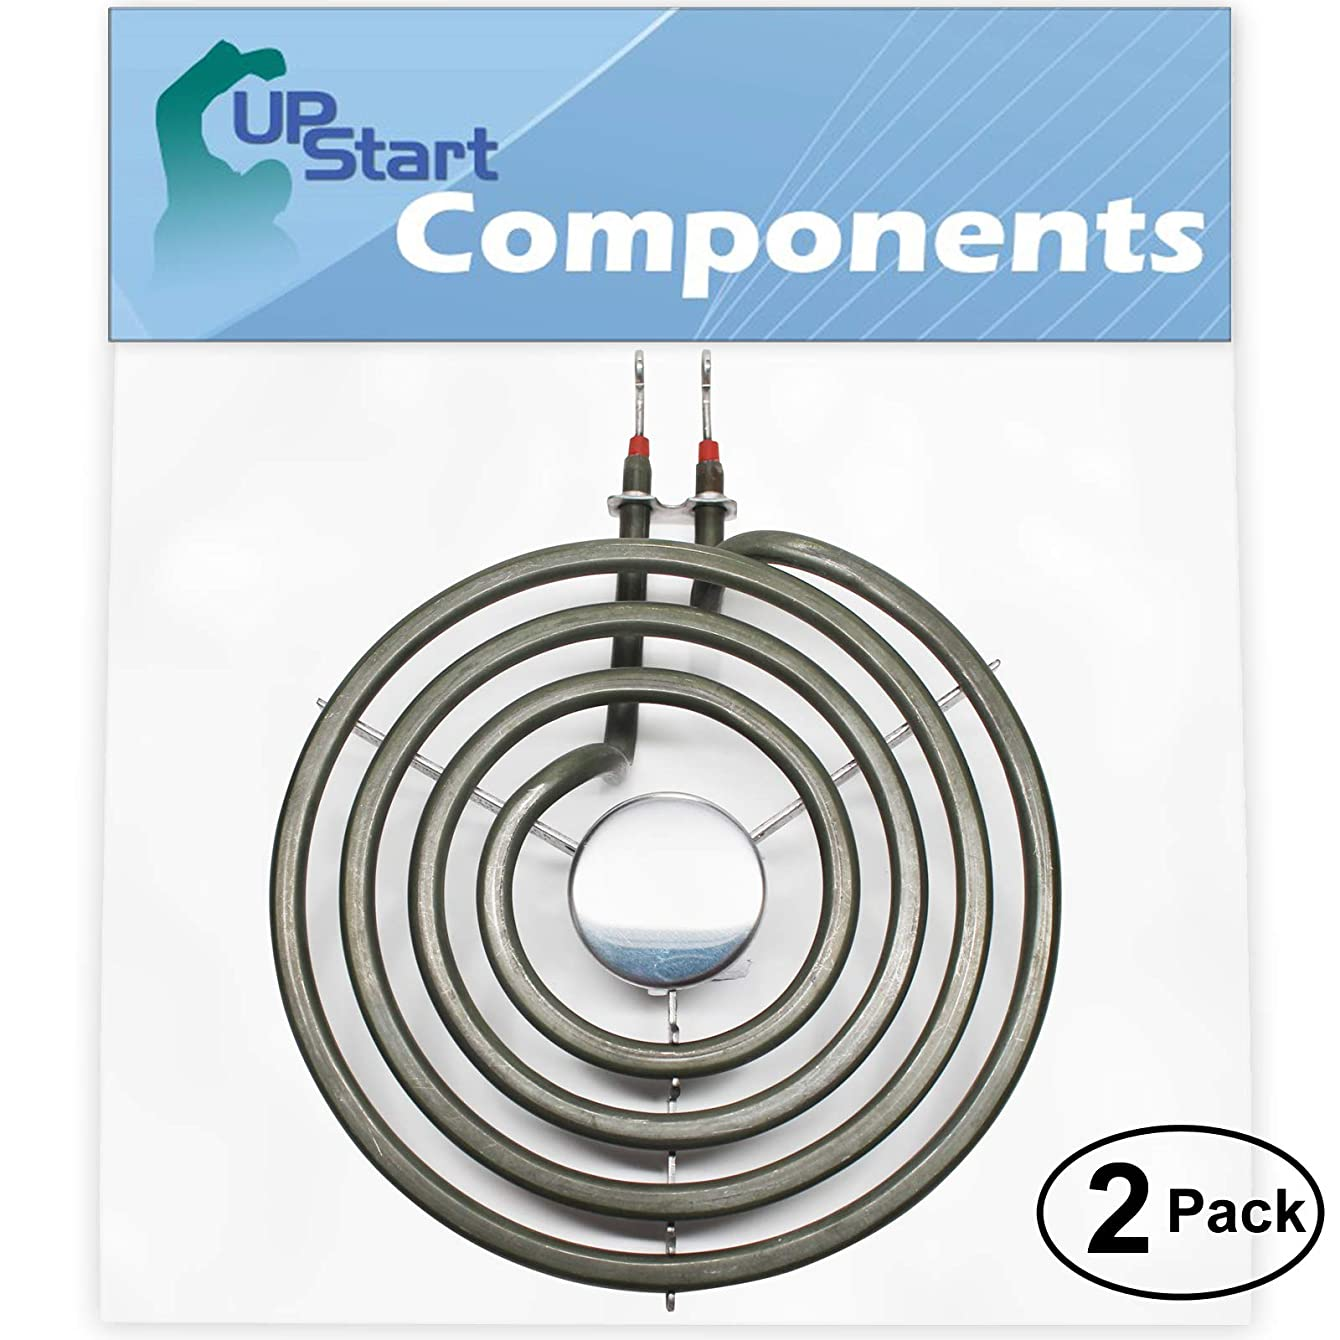 2-Pack Replacement Whirlpool RM988PXVM2 6 inch 4 Turns Surface Burner Element - Compatible Whirlpool 660532 Heating Element for Range, Stove & Cooktop